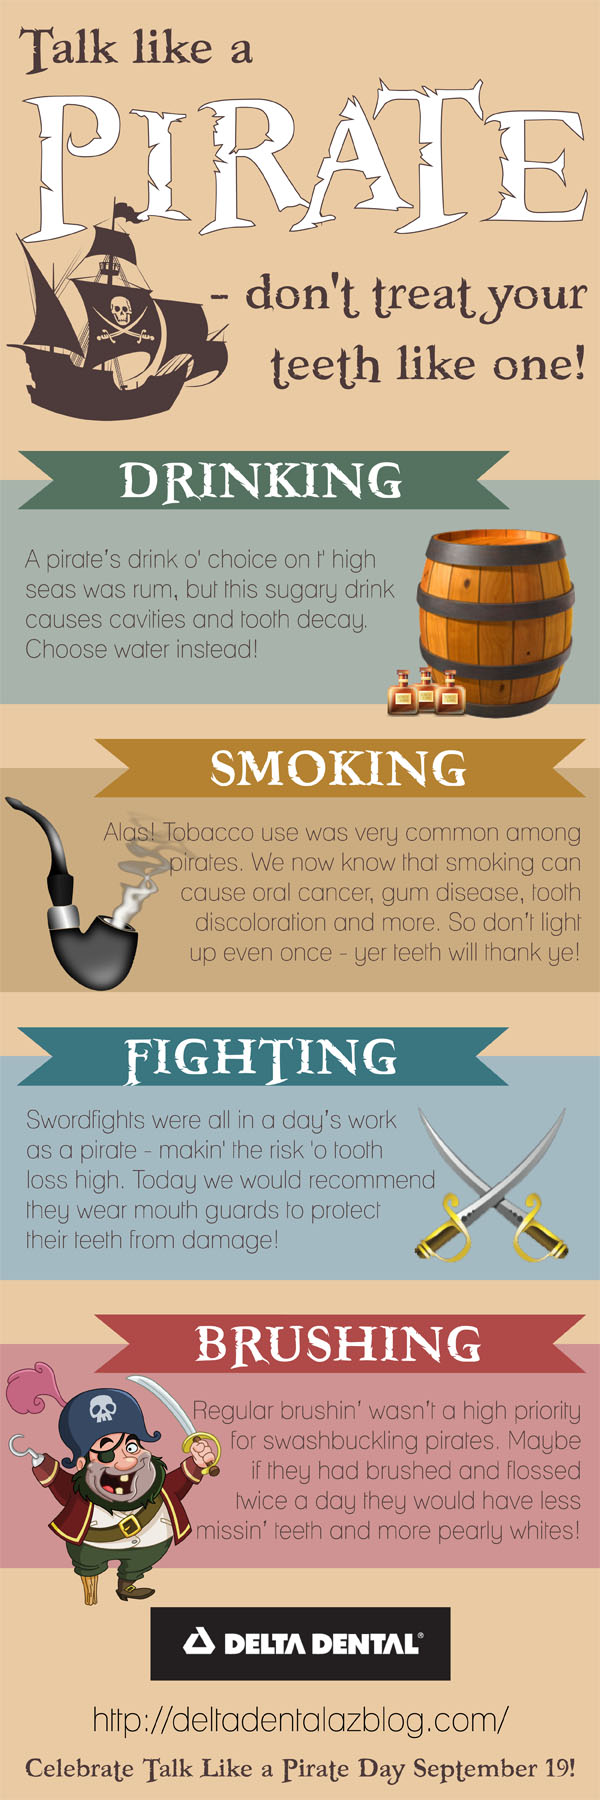 Delta Dental AZ Talk Like a Pirate Day Infographic